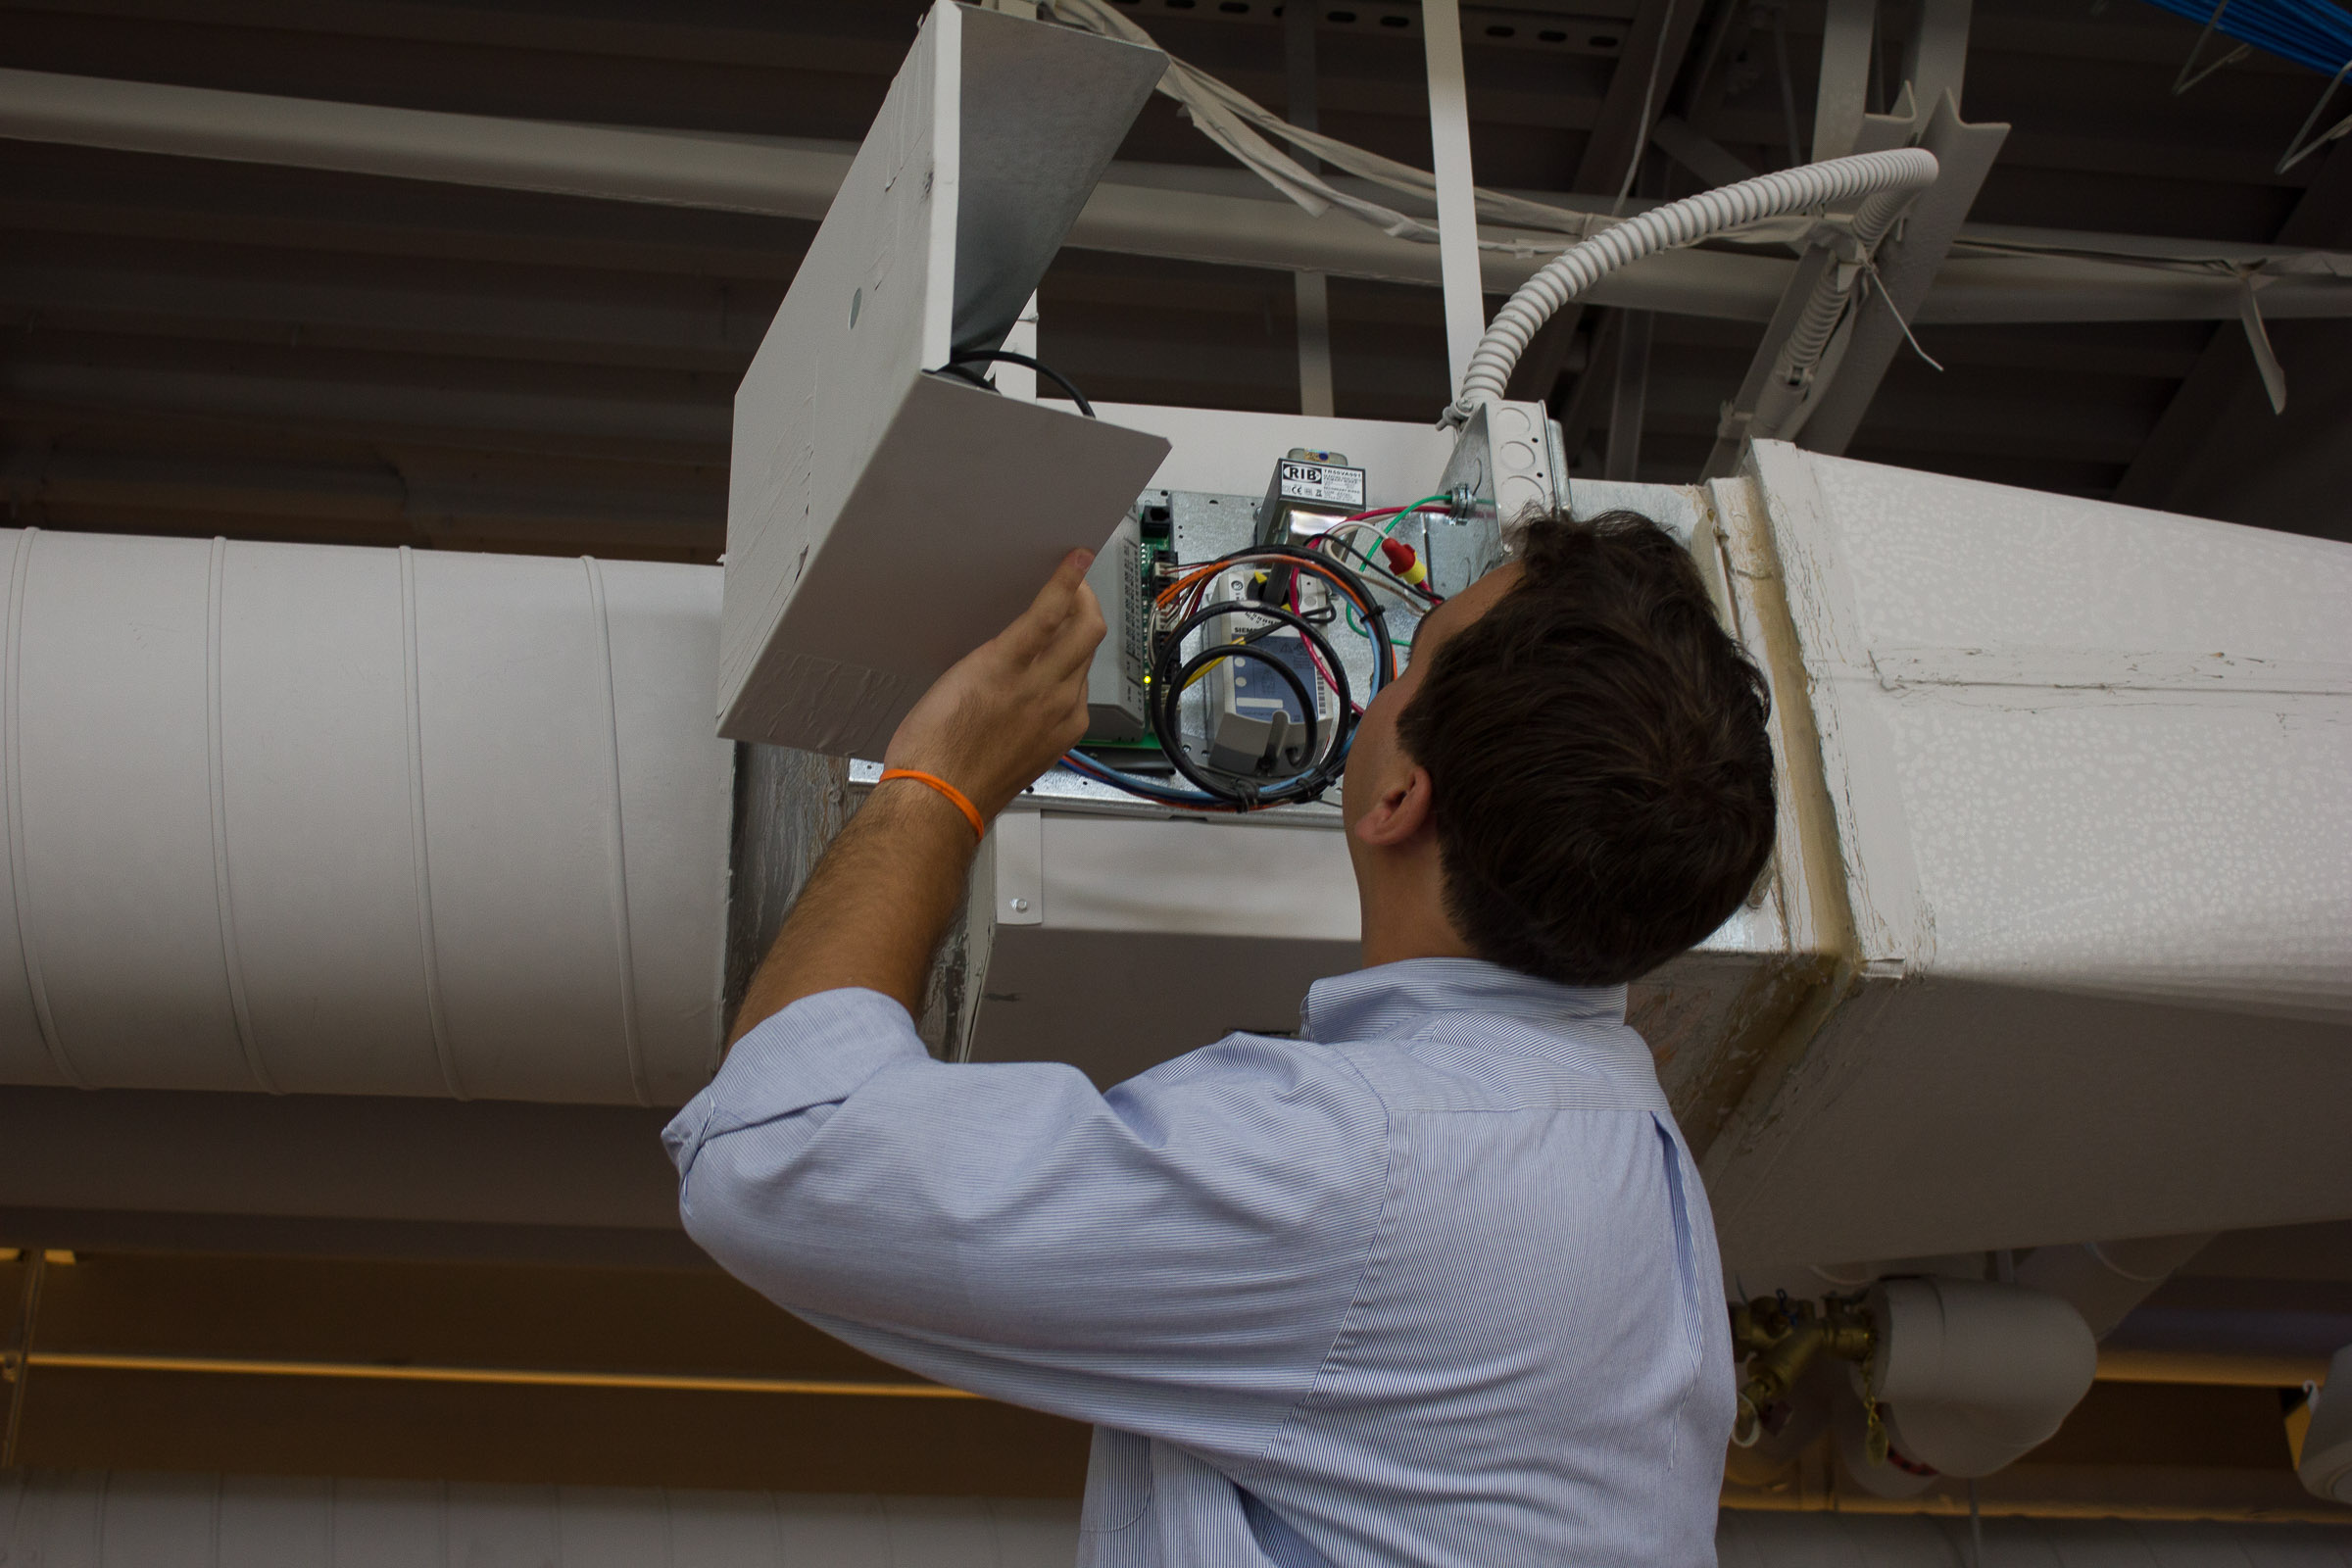 Staff_OES_Comm_Fitzgerald_Examining Ceiling HVAC Box - Landscape.jpg